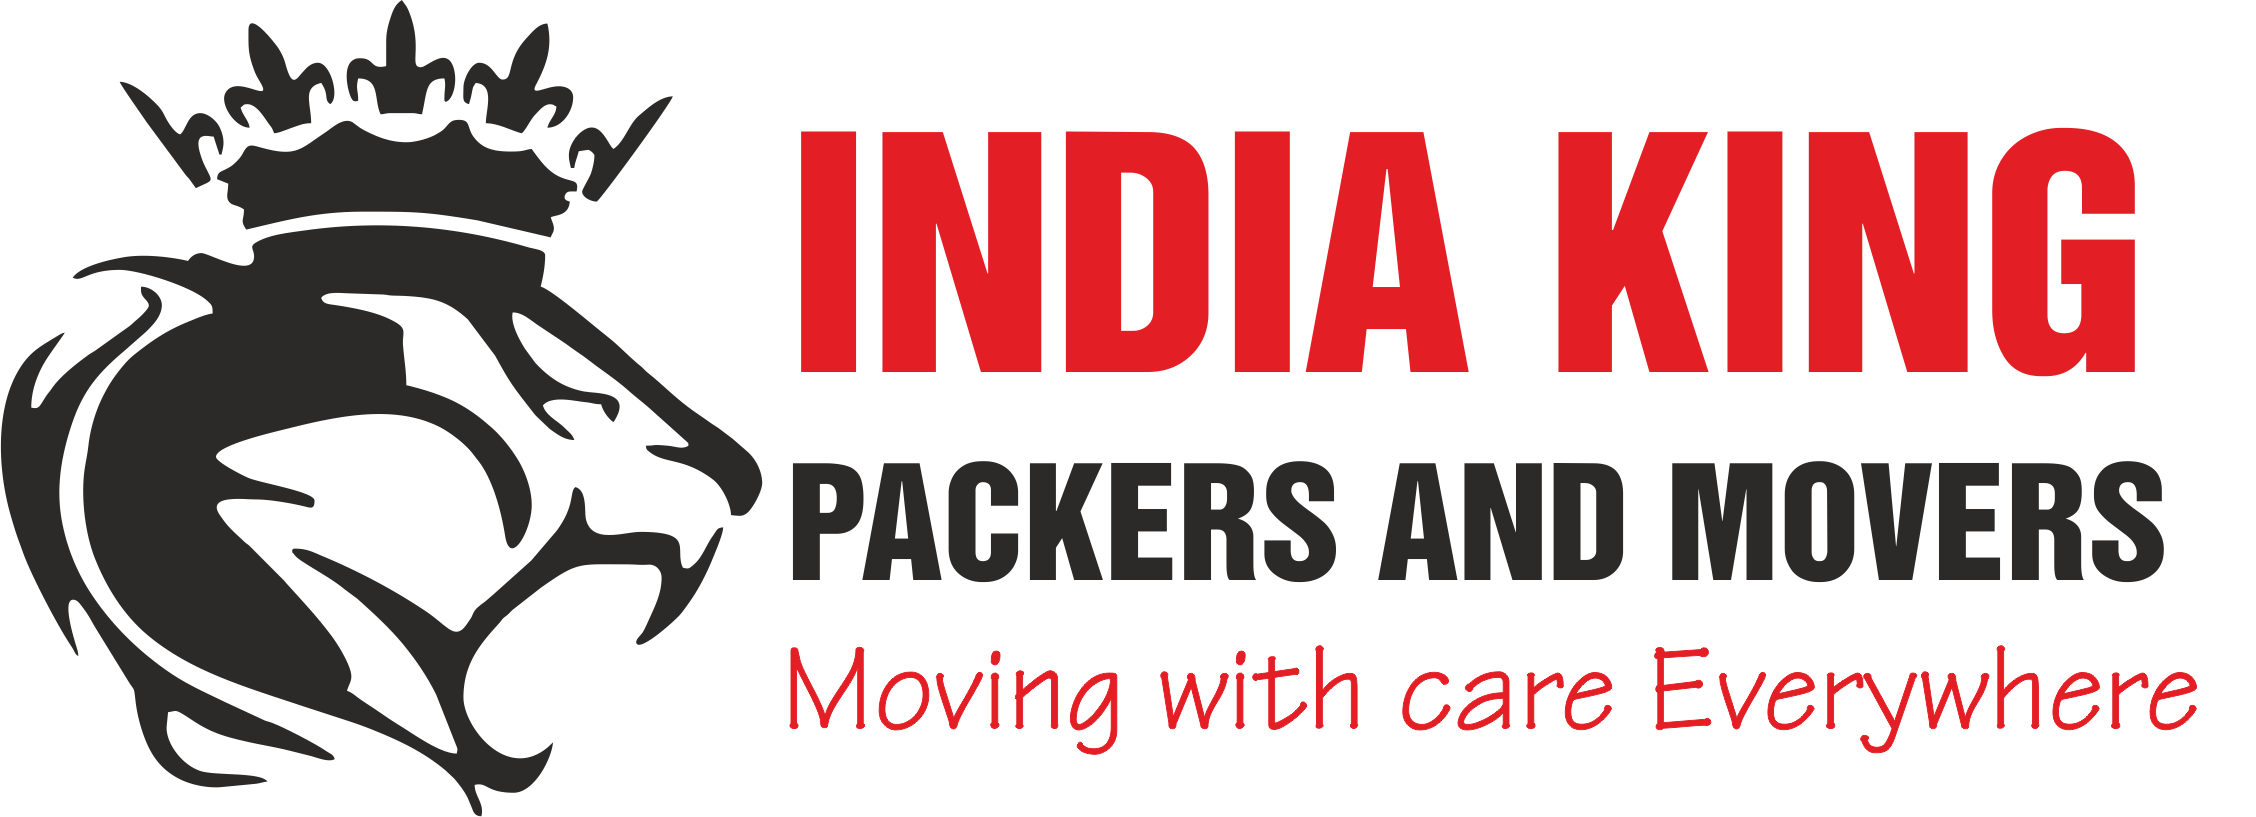 India King Pakers and Movers